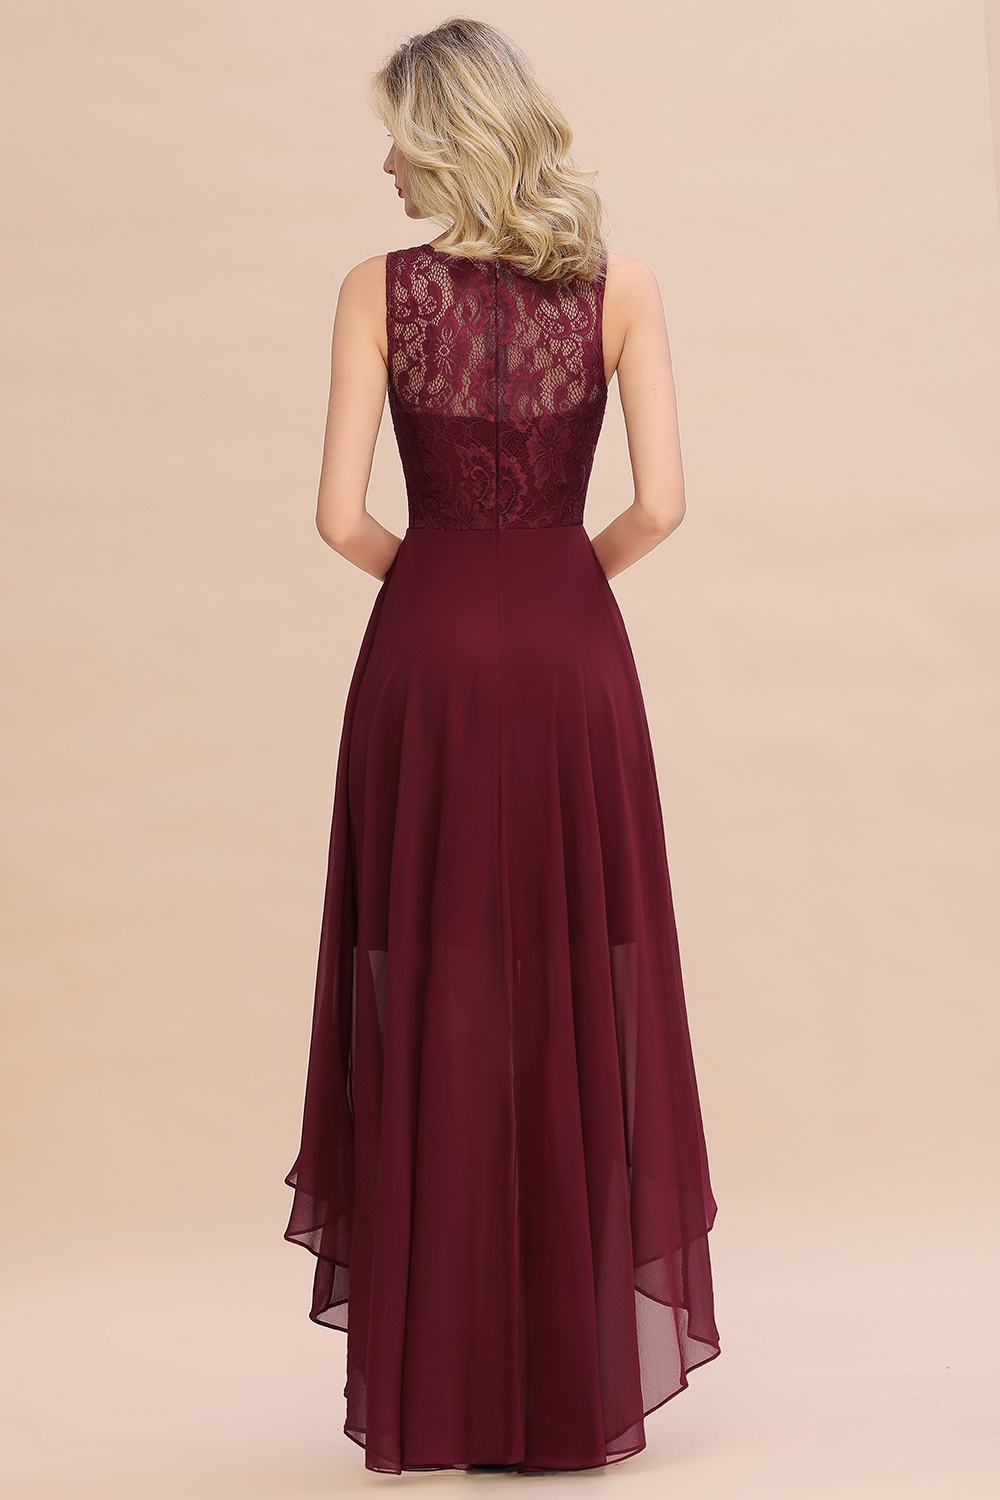 Burgundy Chiffon Long Bridesmaid Dresses 2019 High Low Wedding Party Guest Gown Scoop Neck Sleeveless vestido madrinha in Bridesmaid Dresses from Weddings Events